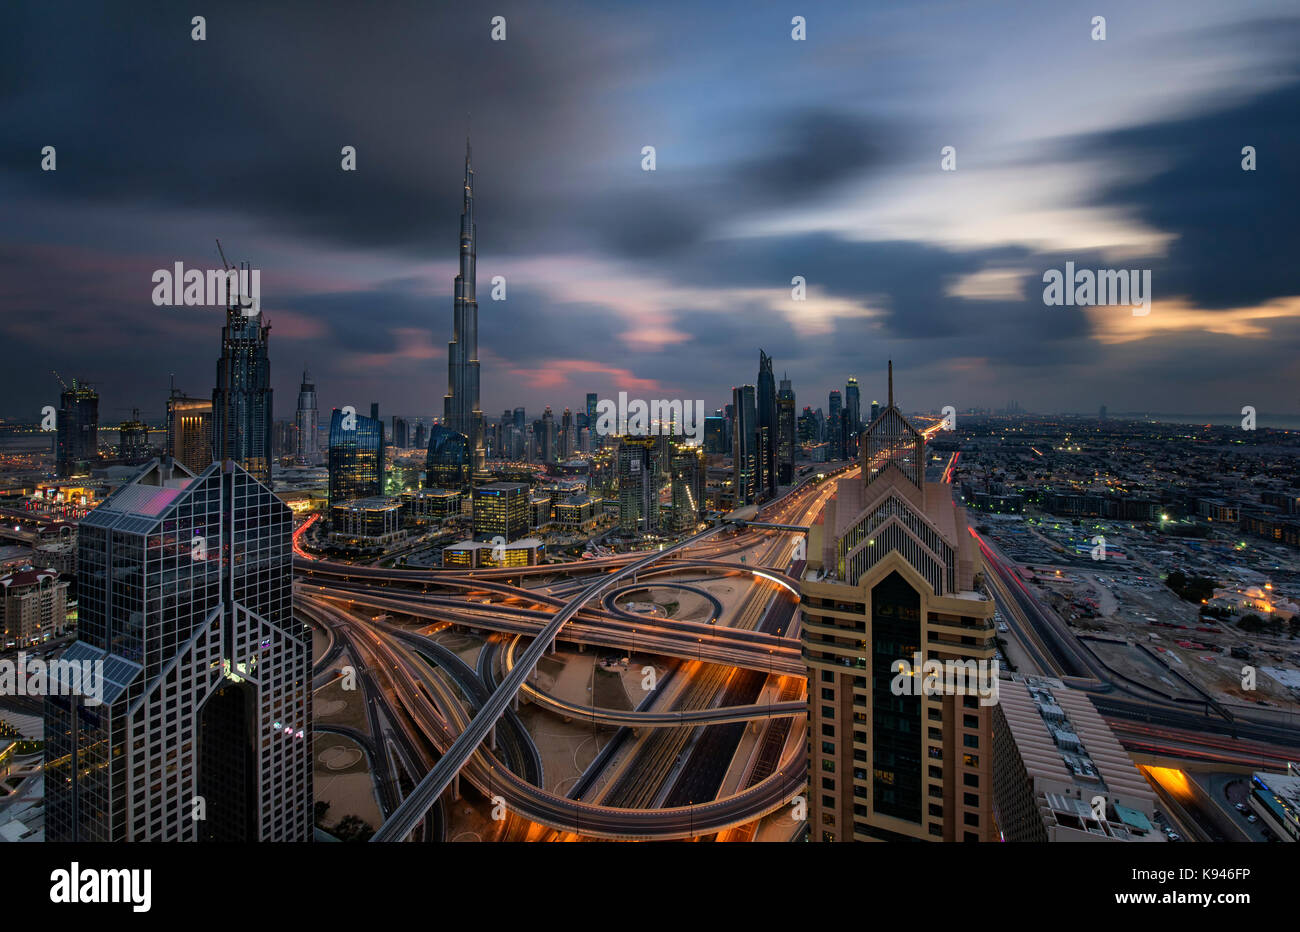 Cityscape of the Dubai, United Arab Emirates, with the Burj Khalifa and other skyscrapers under a cloudy sky. - Stock Image